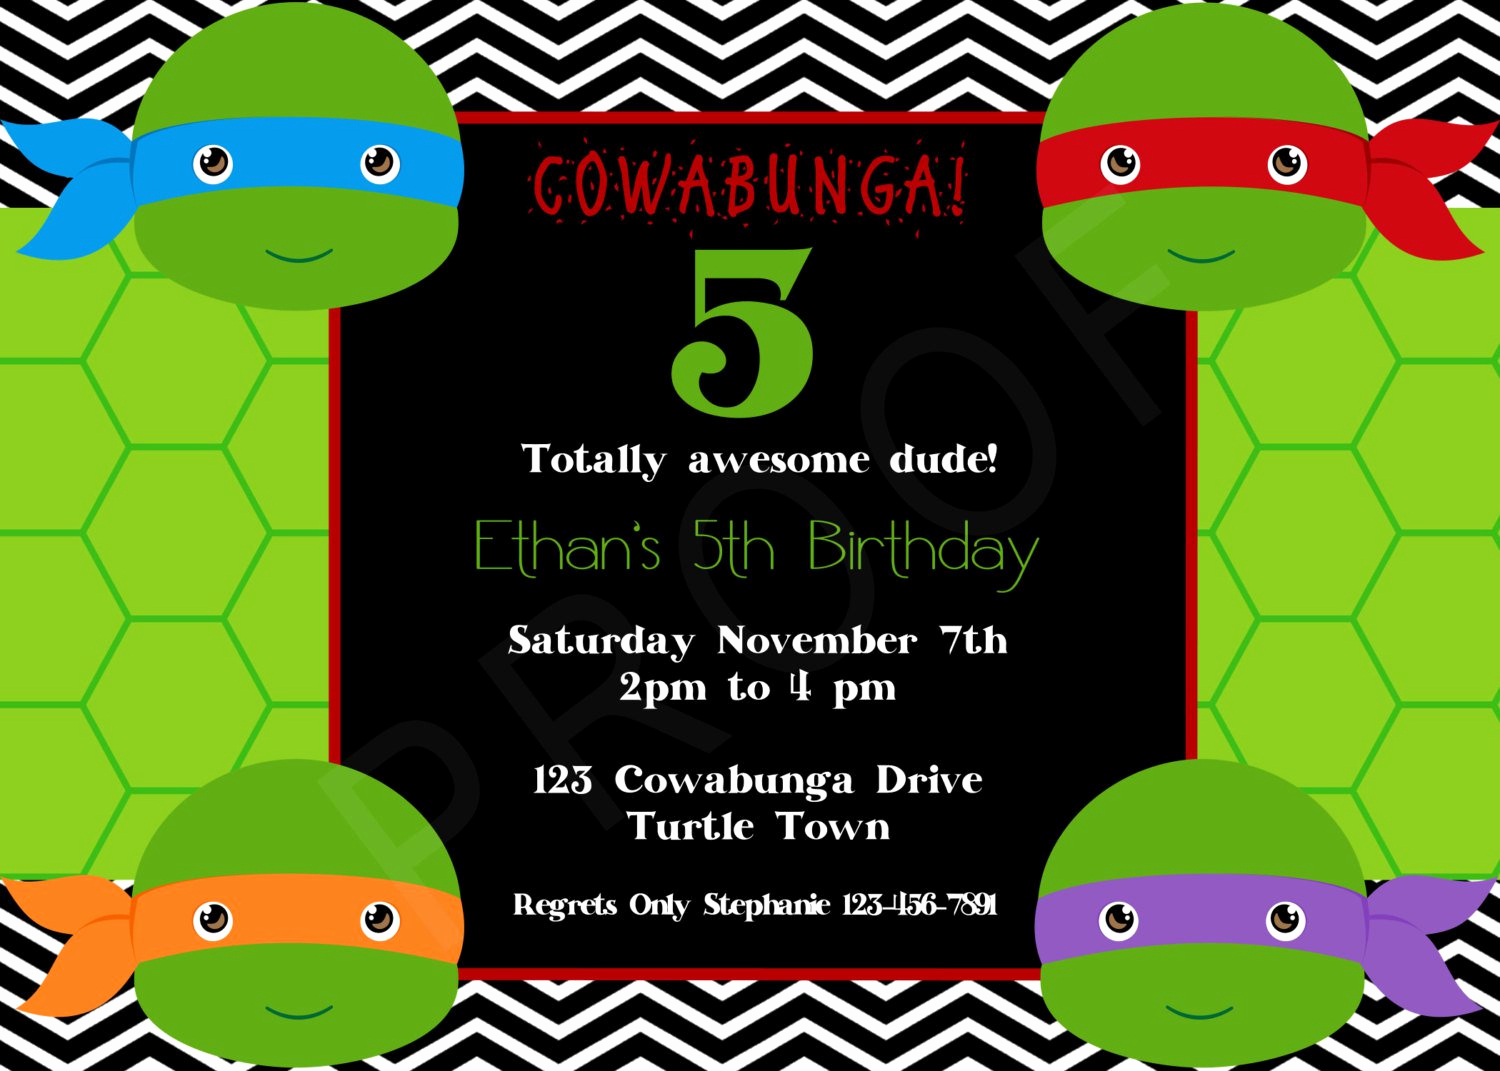 Ninja Turtle Invitation Templates Free New Teenage Mutant Ninja Turtles Birthday Party Invitations Free